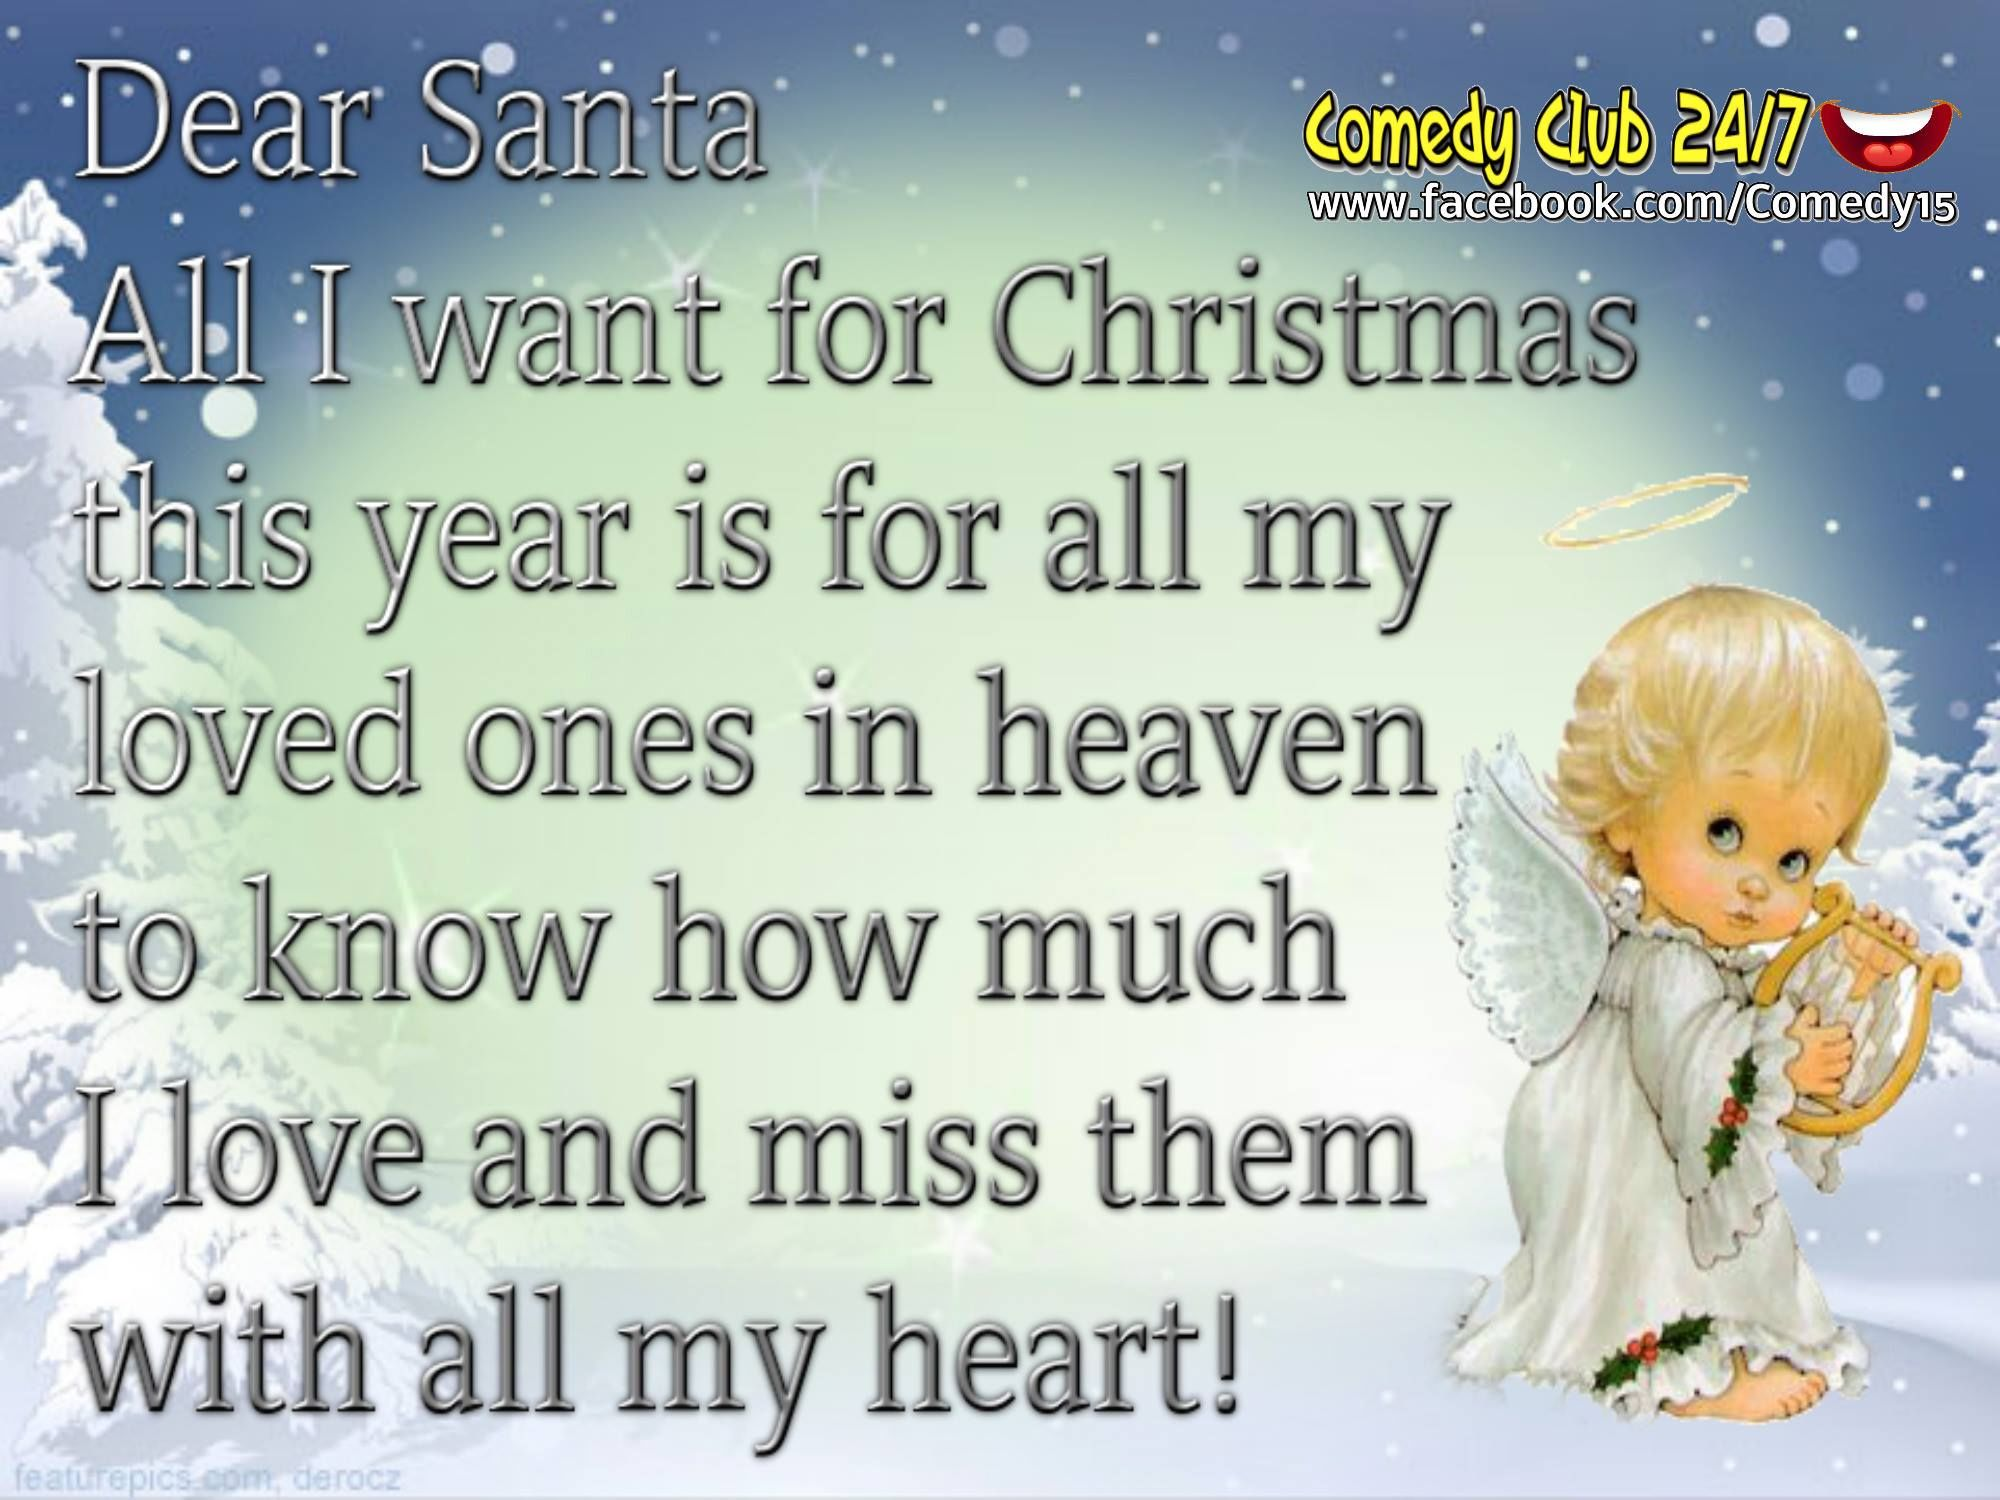 Quotes About Lost Loved Ones In Heaven Amusing Dear Santa I Want All My Loved Ones In Heaven To Know I Love Them